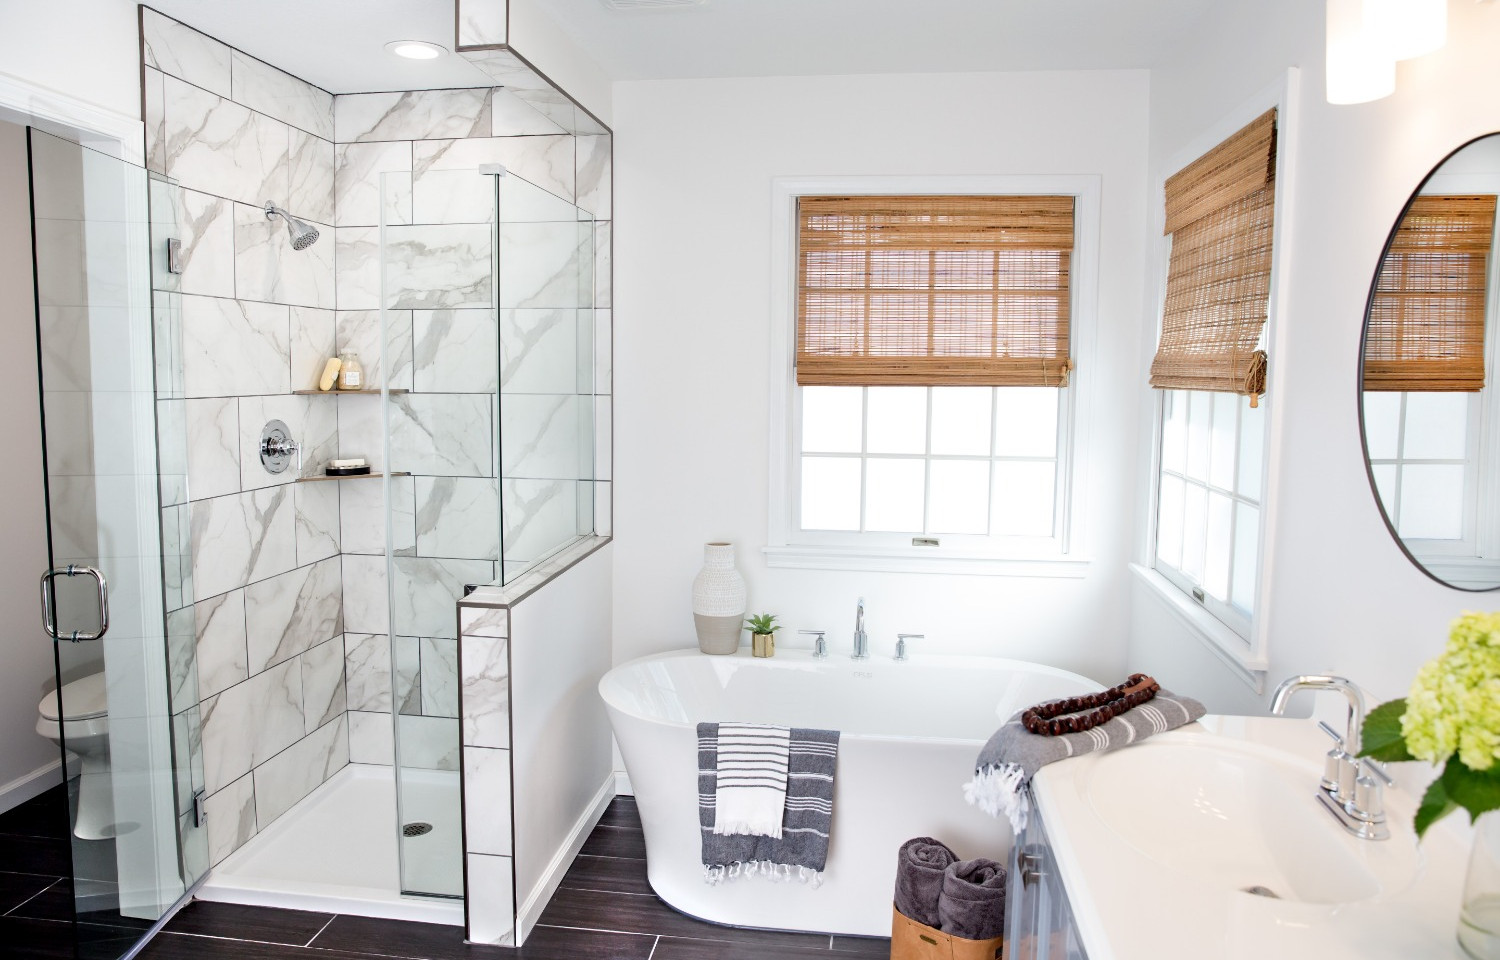 A stunning view of the Hilltop Bathroom Remodel